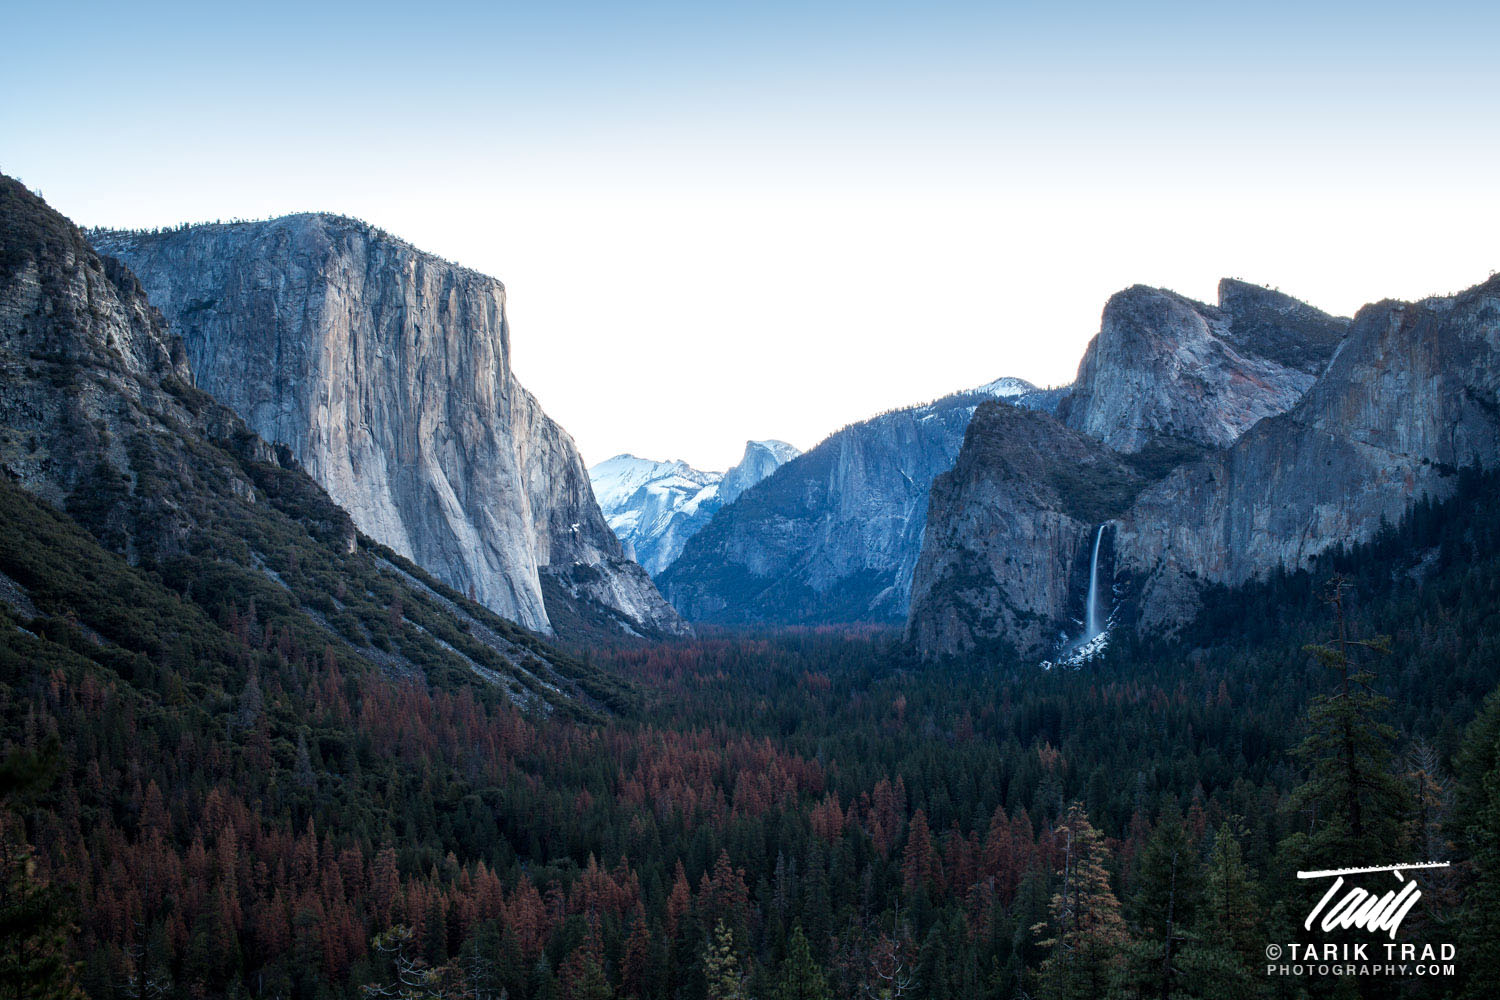 Gates of the Valley, with El Capitan on the left, Half Dome in the center, and Bridalveil Fall to the right. Click to view larger image.